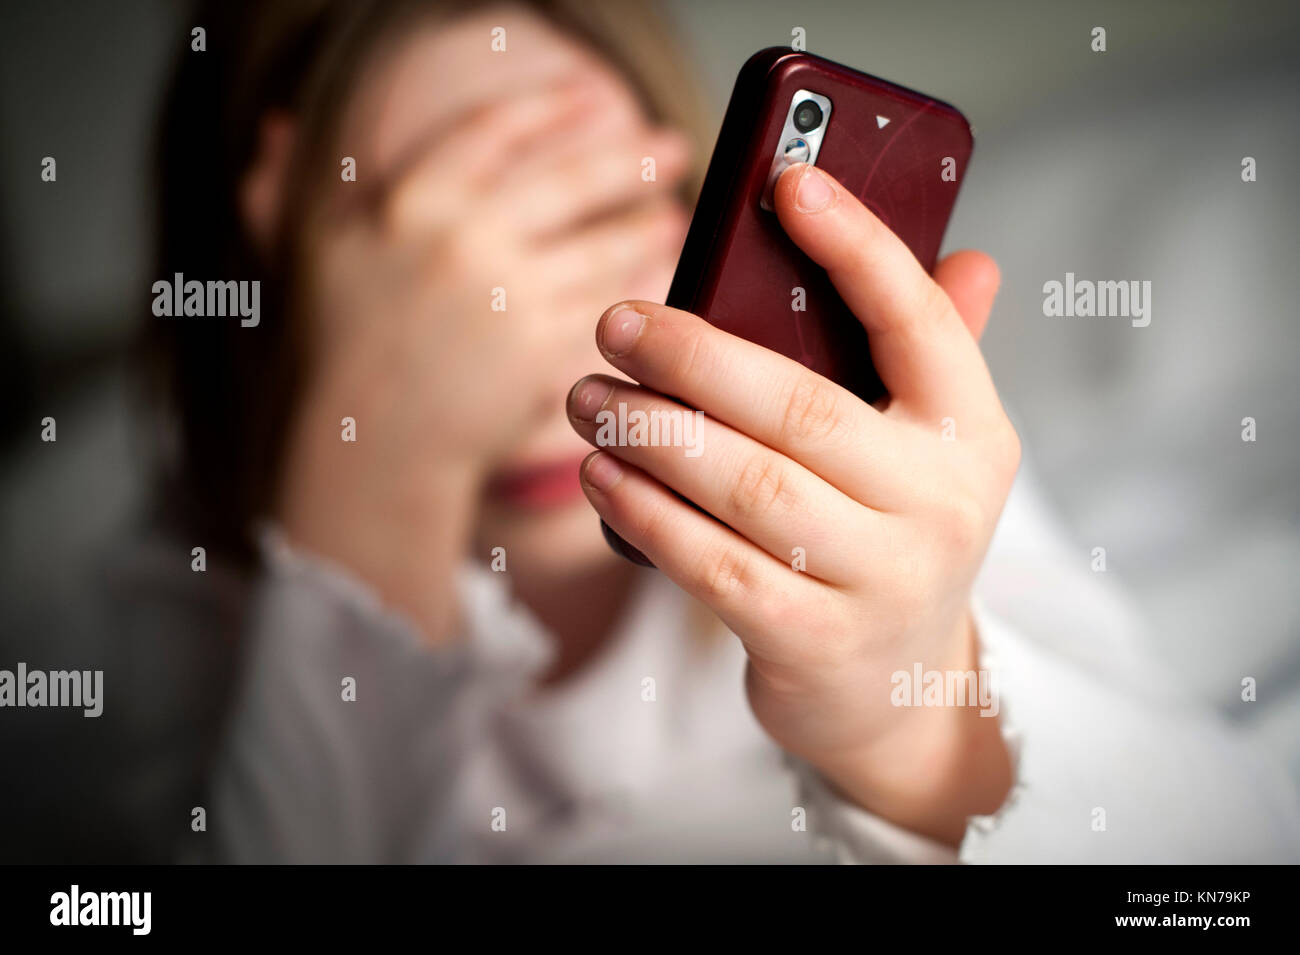 Bad news for a young girl using a smart phone on social media. - Stock Image